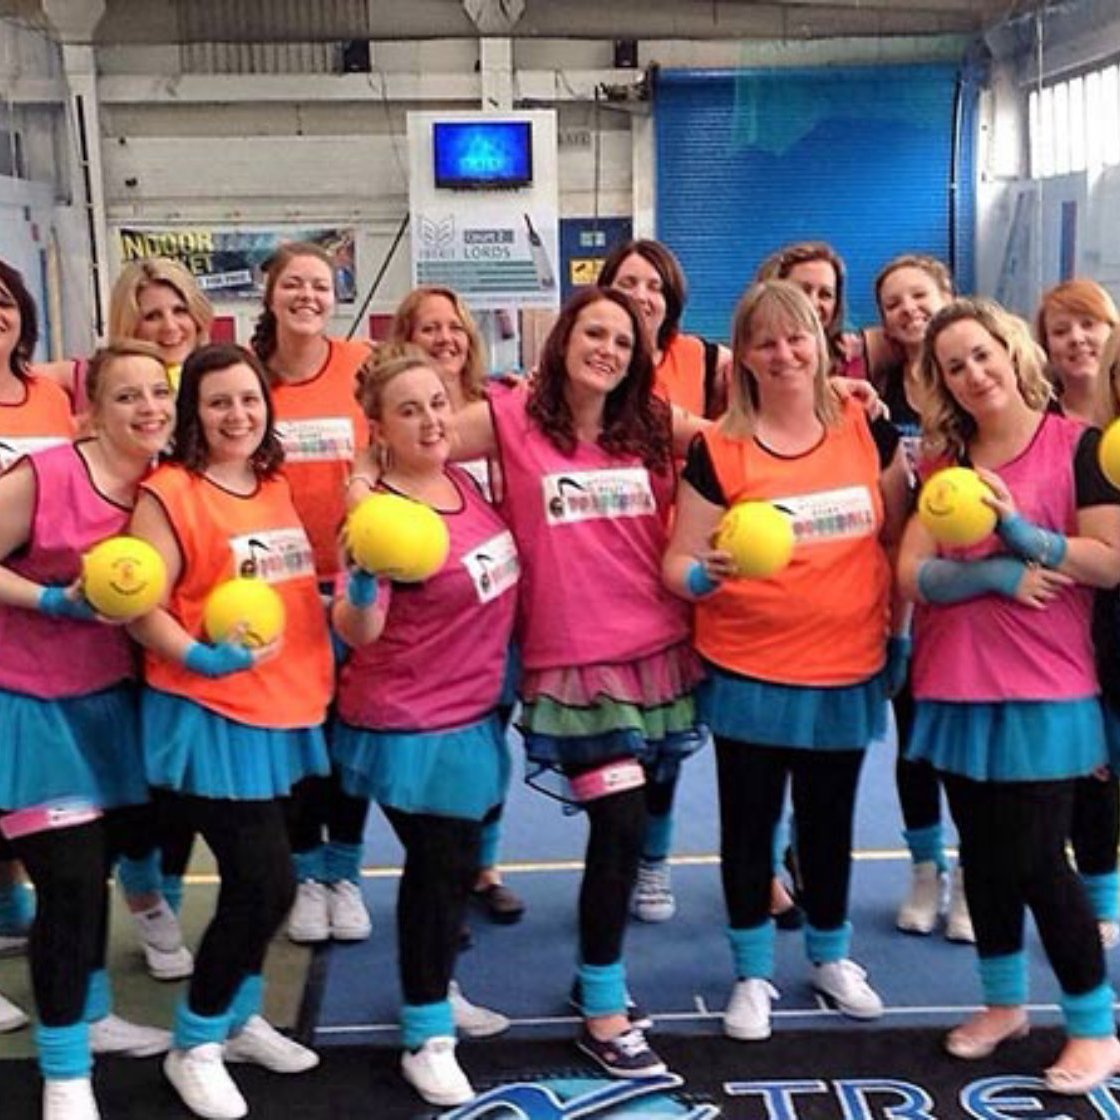 Mr And Mrs Hen Game: Two Hen Party Activities For £52pp, Cocktail Making Party